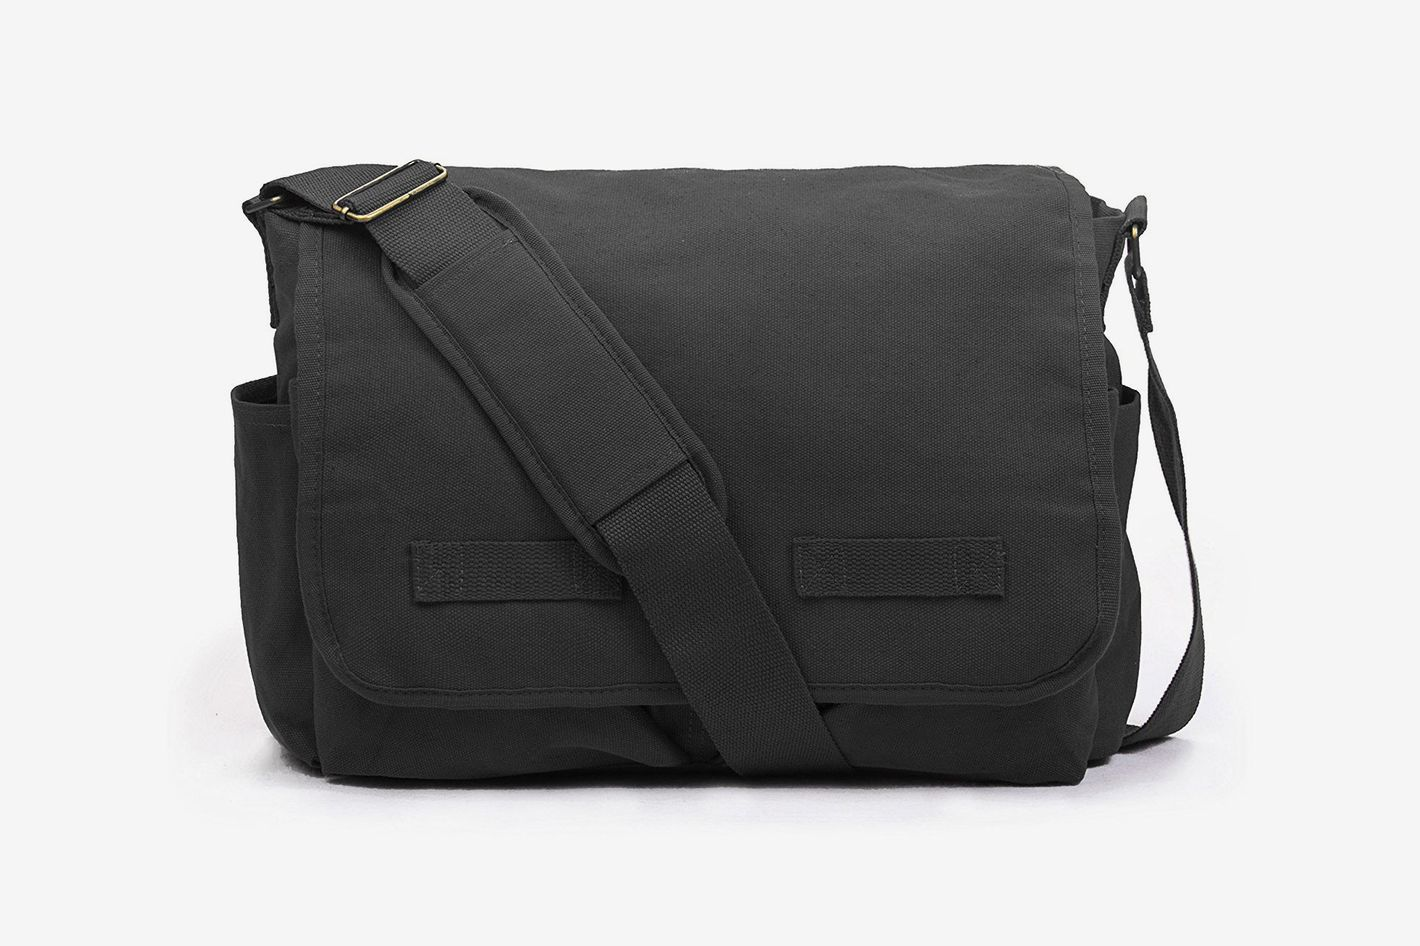 11 Best Messenger Bags for Men 2018 b95a9c9829f9c